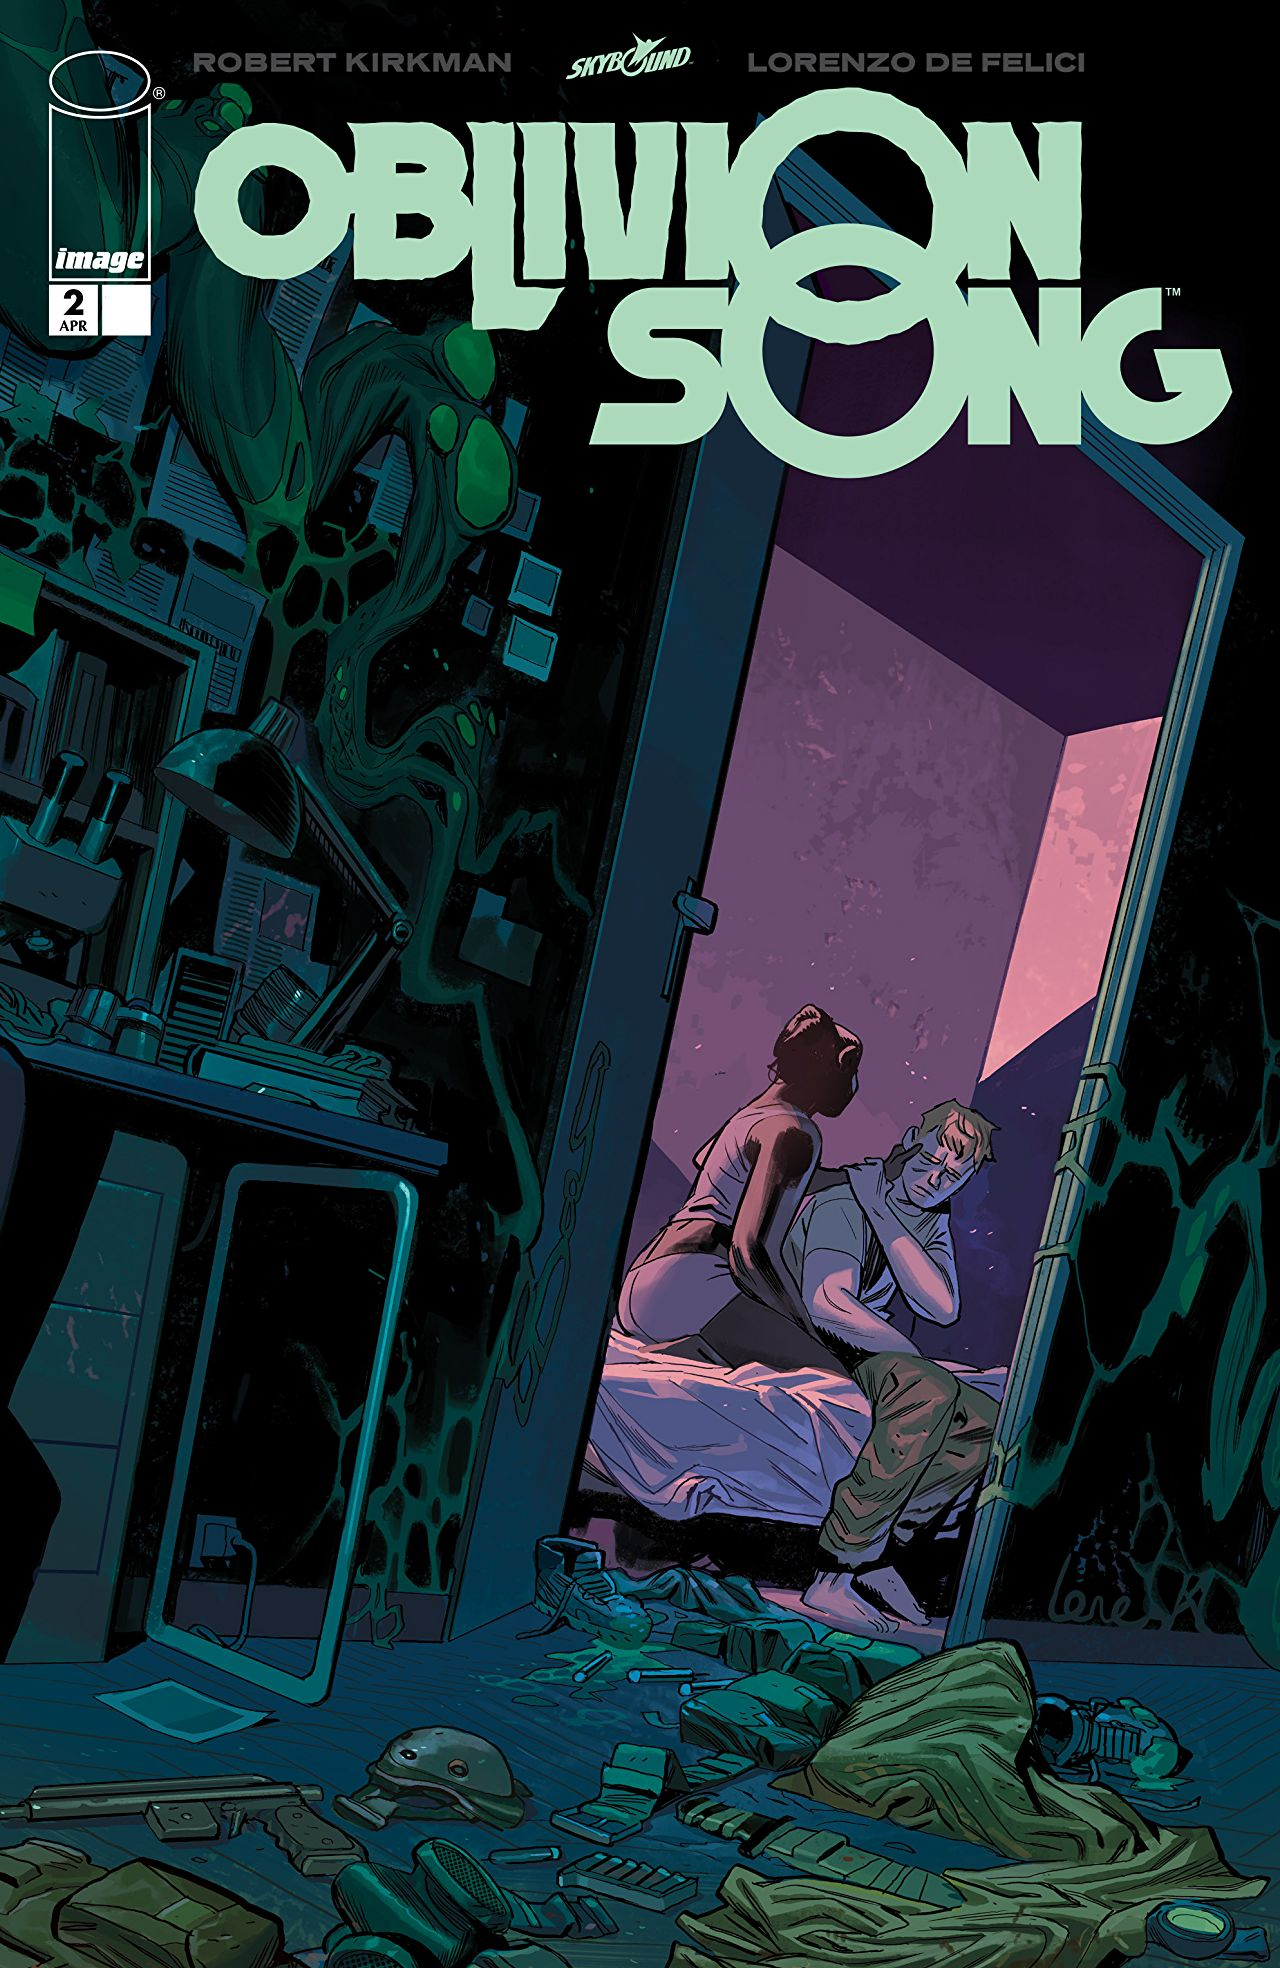 Oblivion Song #2 review: A much slower, character-driven issue